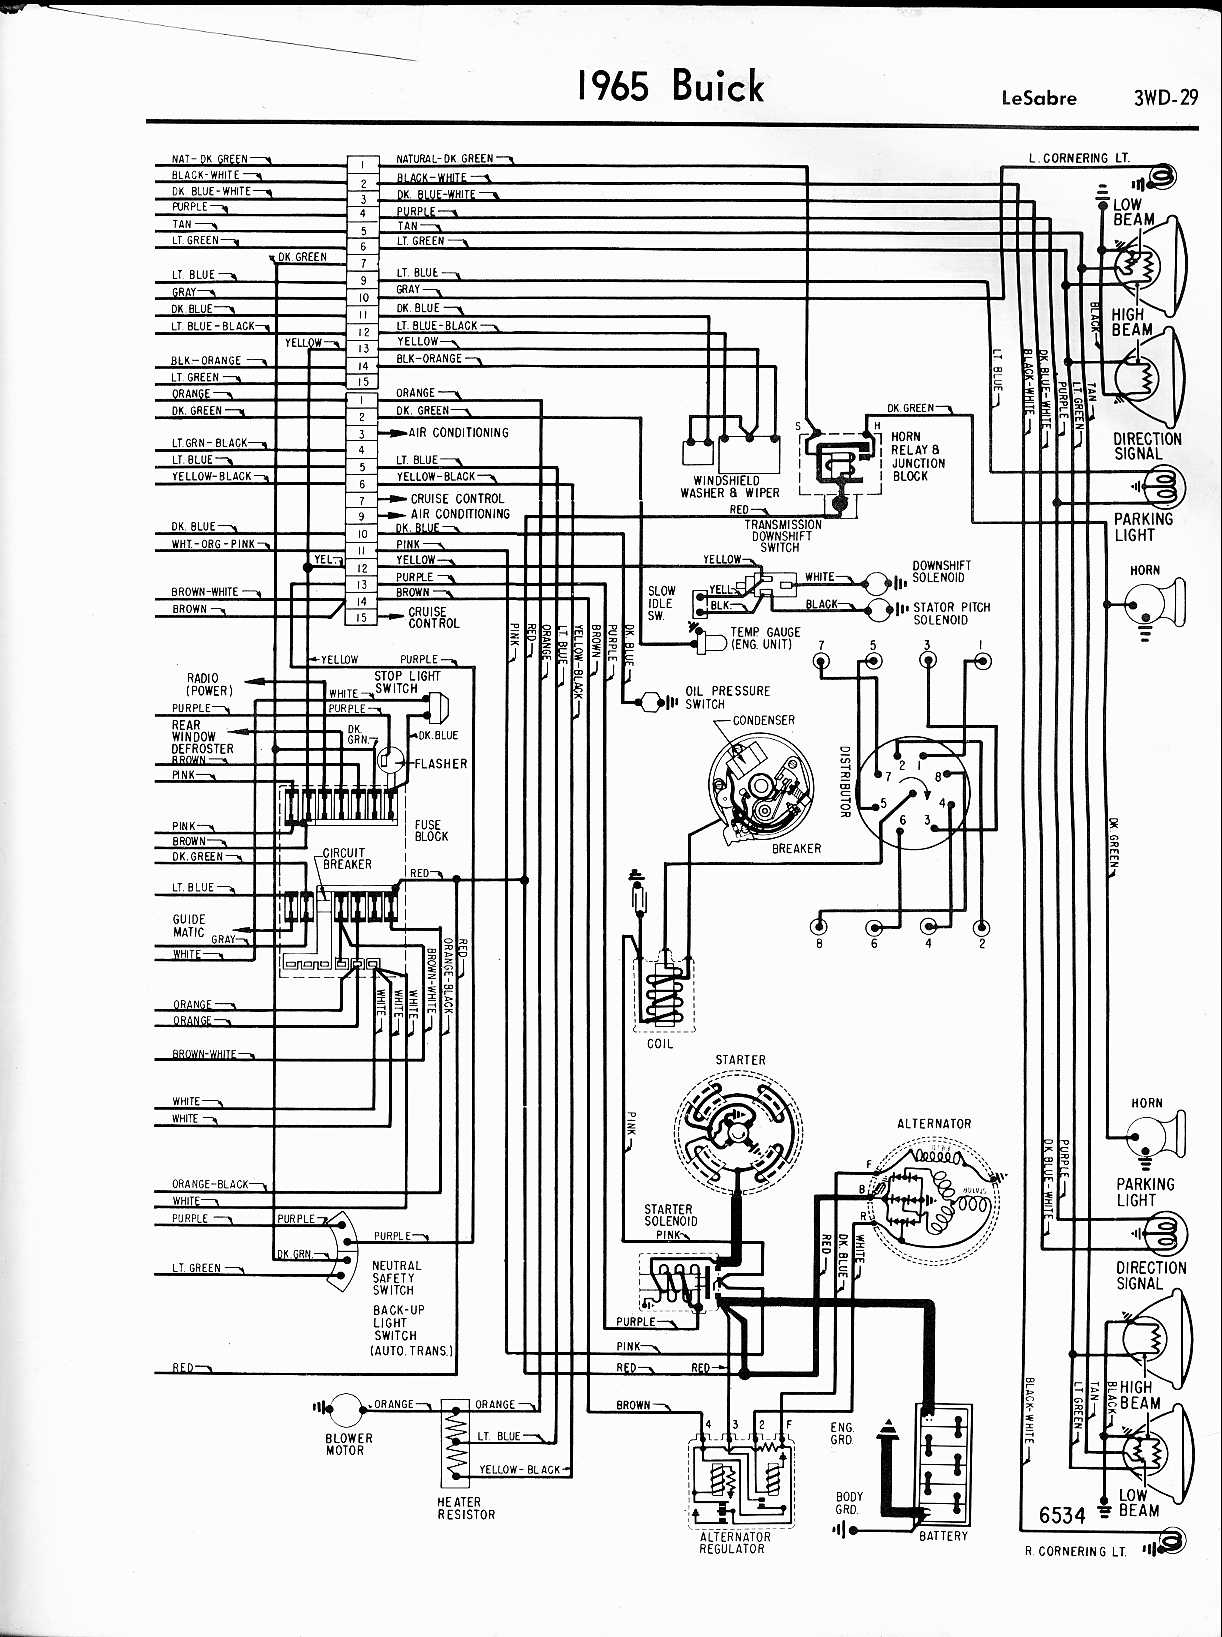 2002 Buick Century Window Wiring Diagram